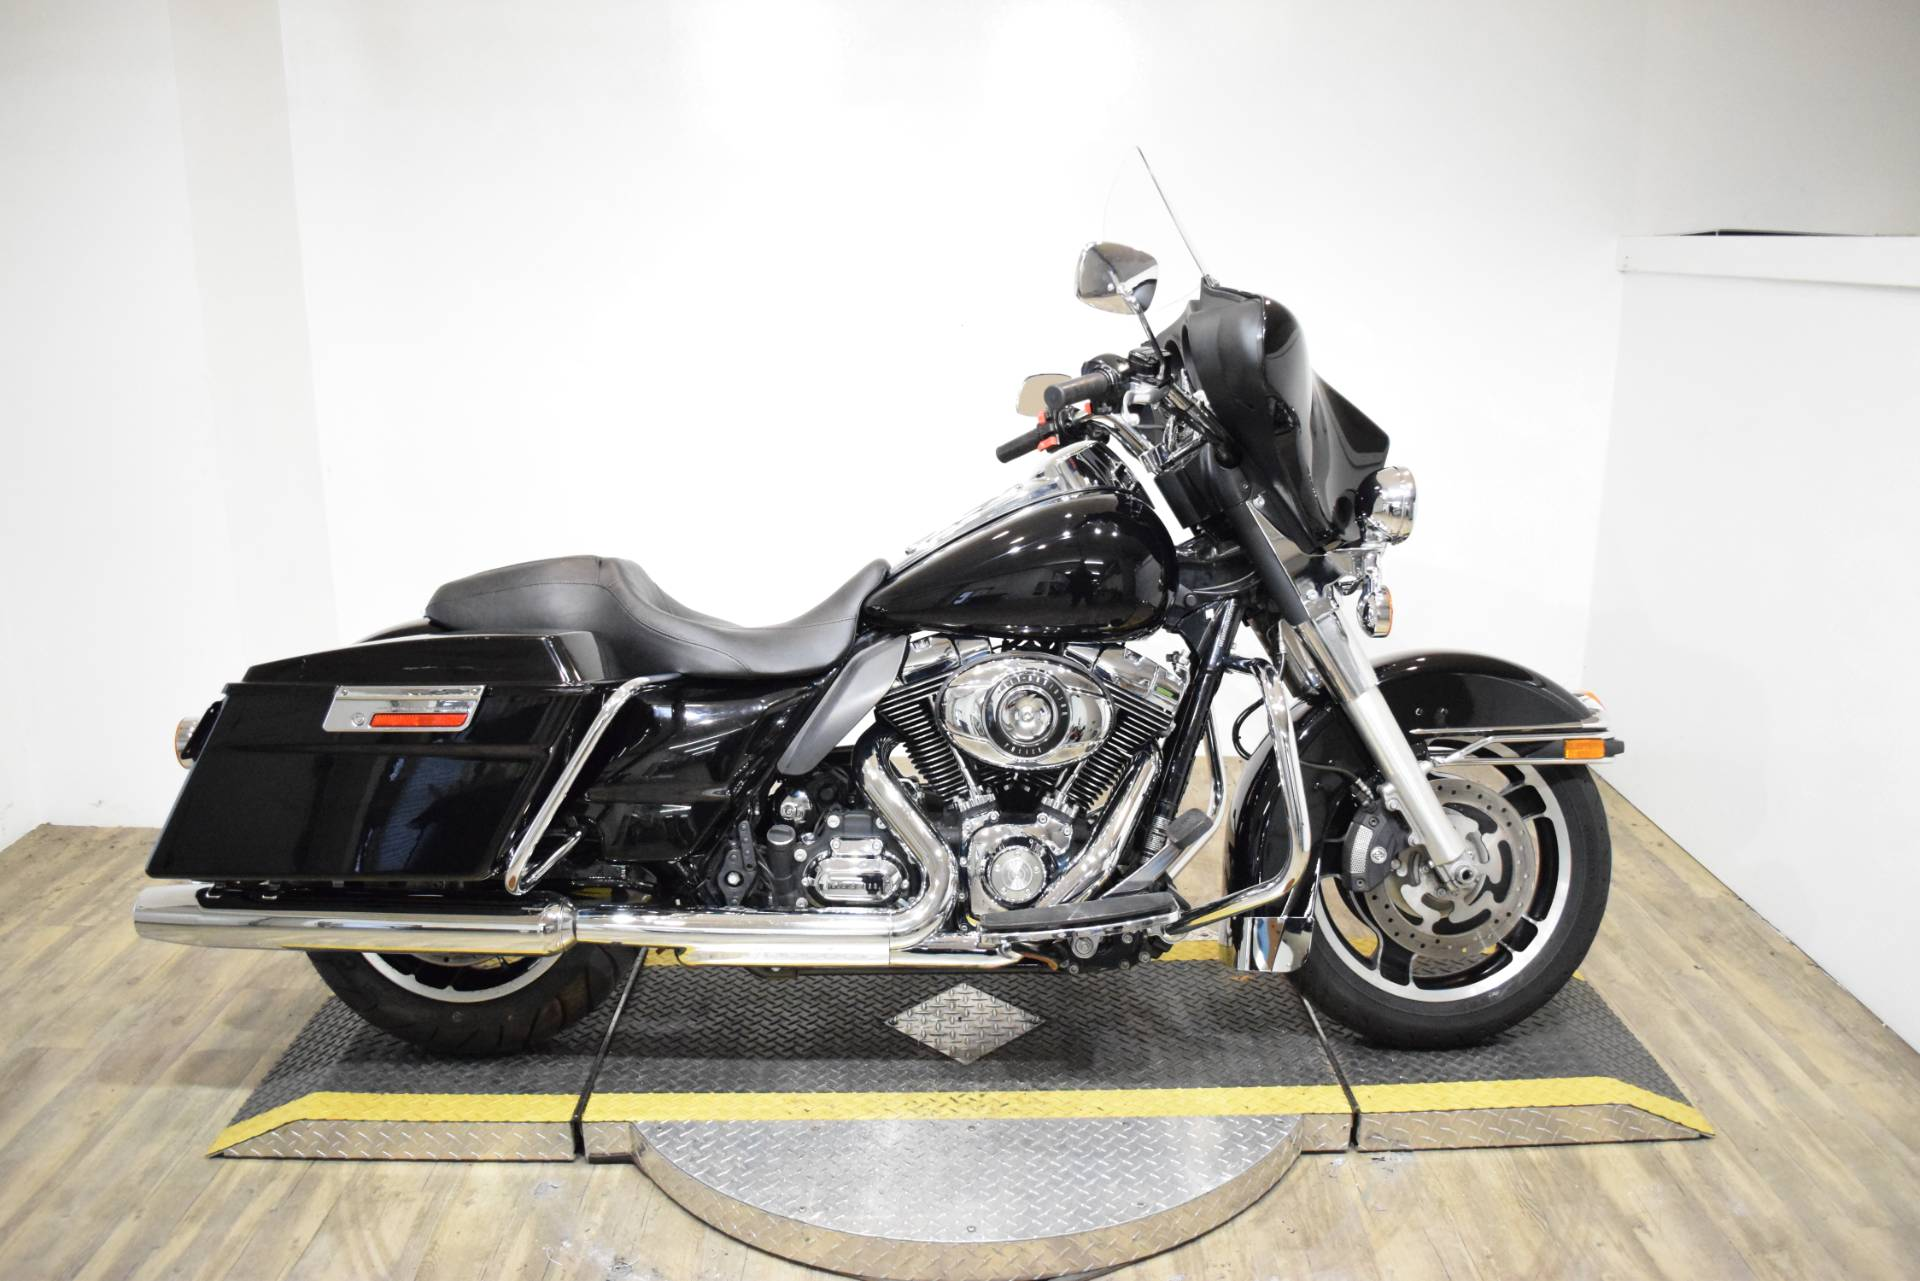 2013 Harley-Davidson Police Electra Glide® in Wauconda, Illinois - Photo 1